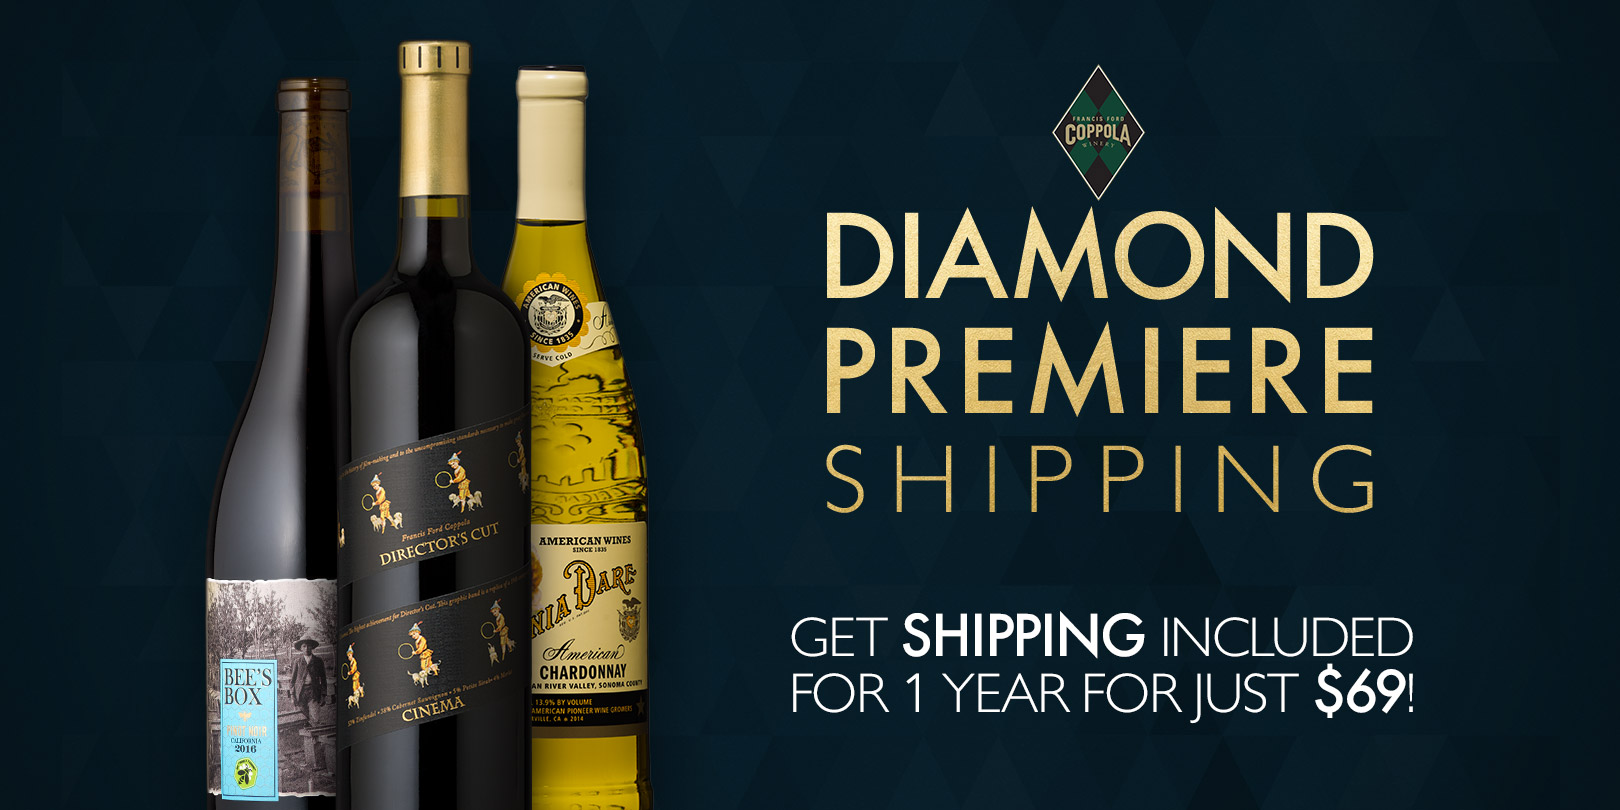 Diamond Premiere shipping advertisement. - Featured Item